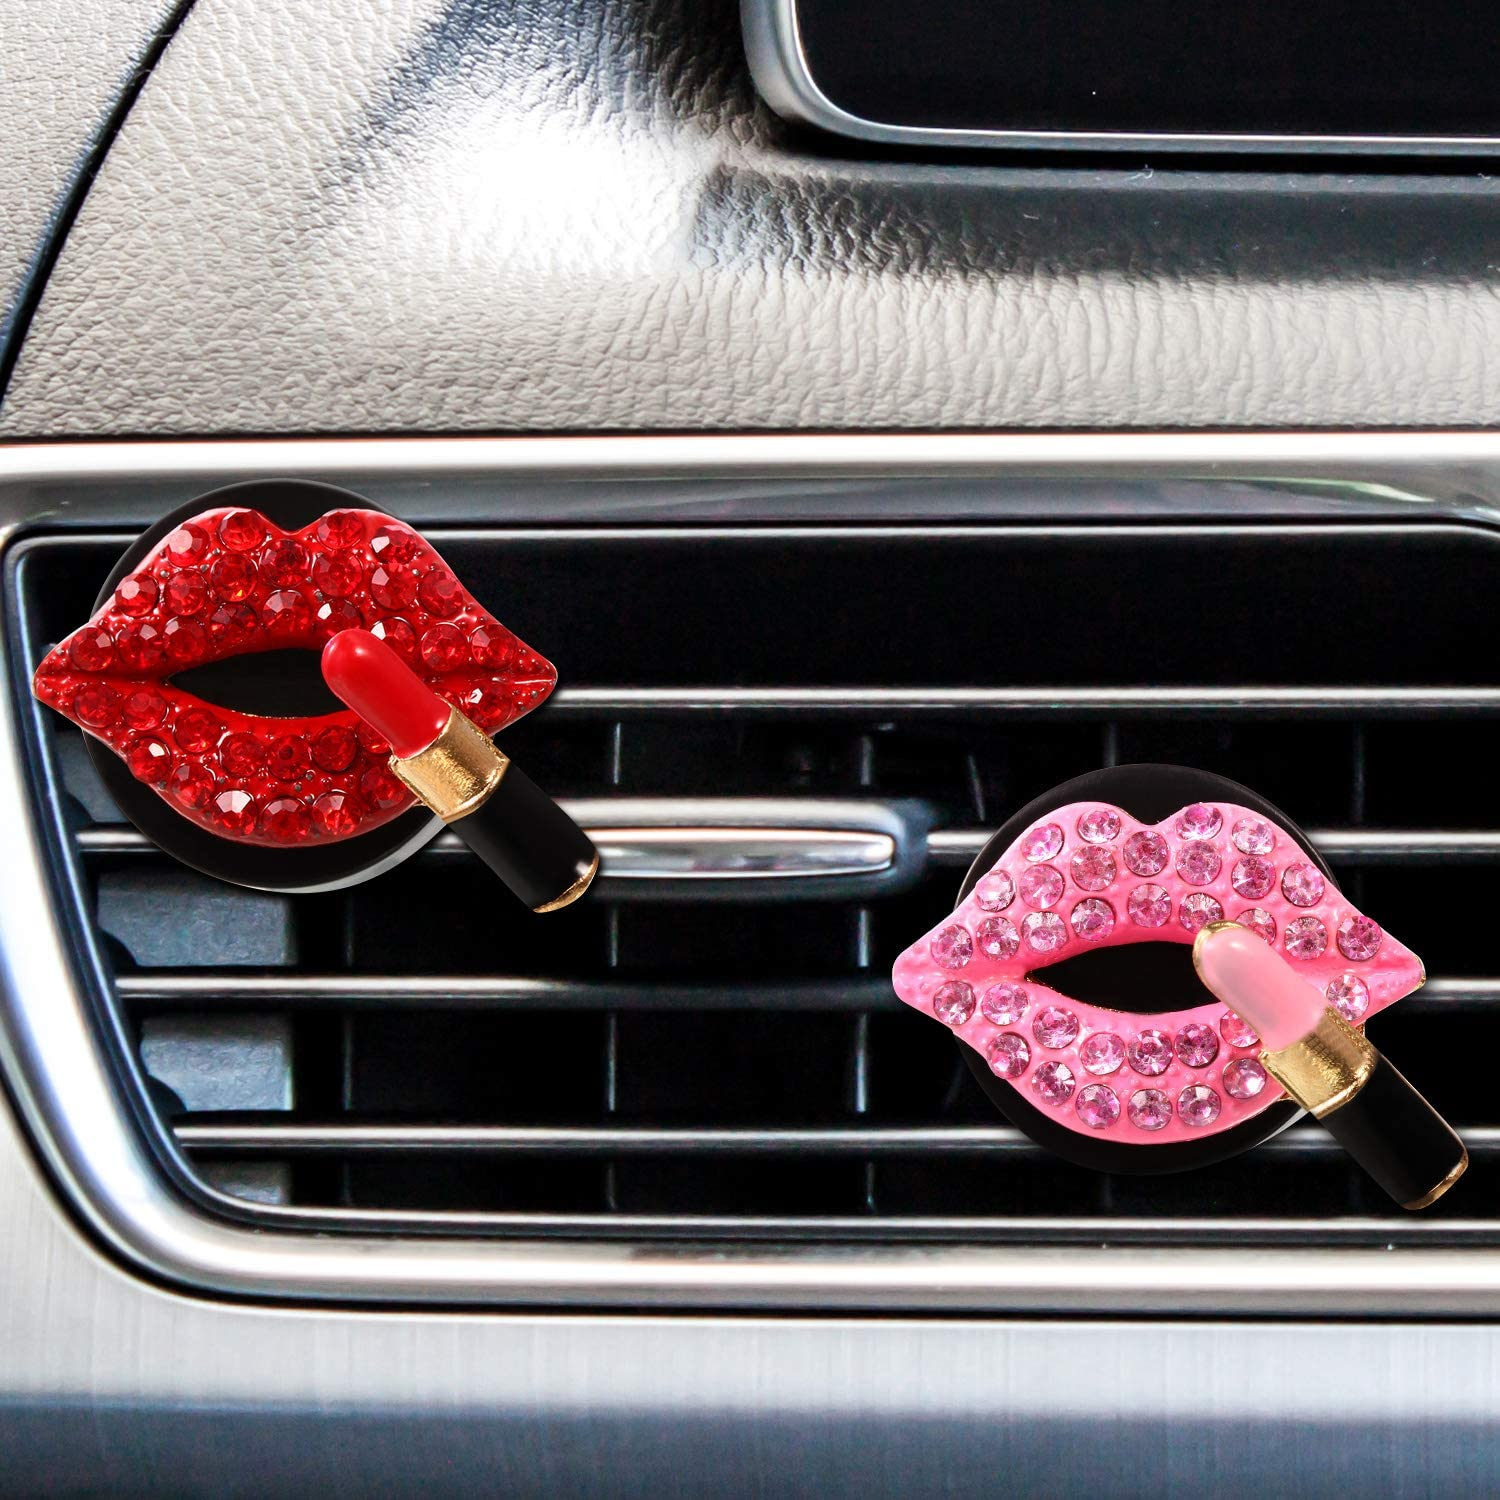 4 Pieces Car Air Vent Decoration Bling Car Interior Decoration Rhinestone Lipstick Car Air Freshener Clip with Fragrance Cotton Pads (Red, Pink)